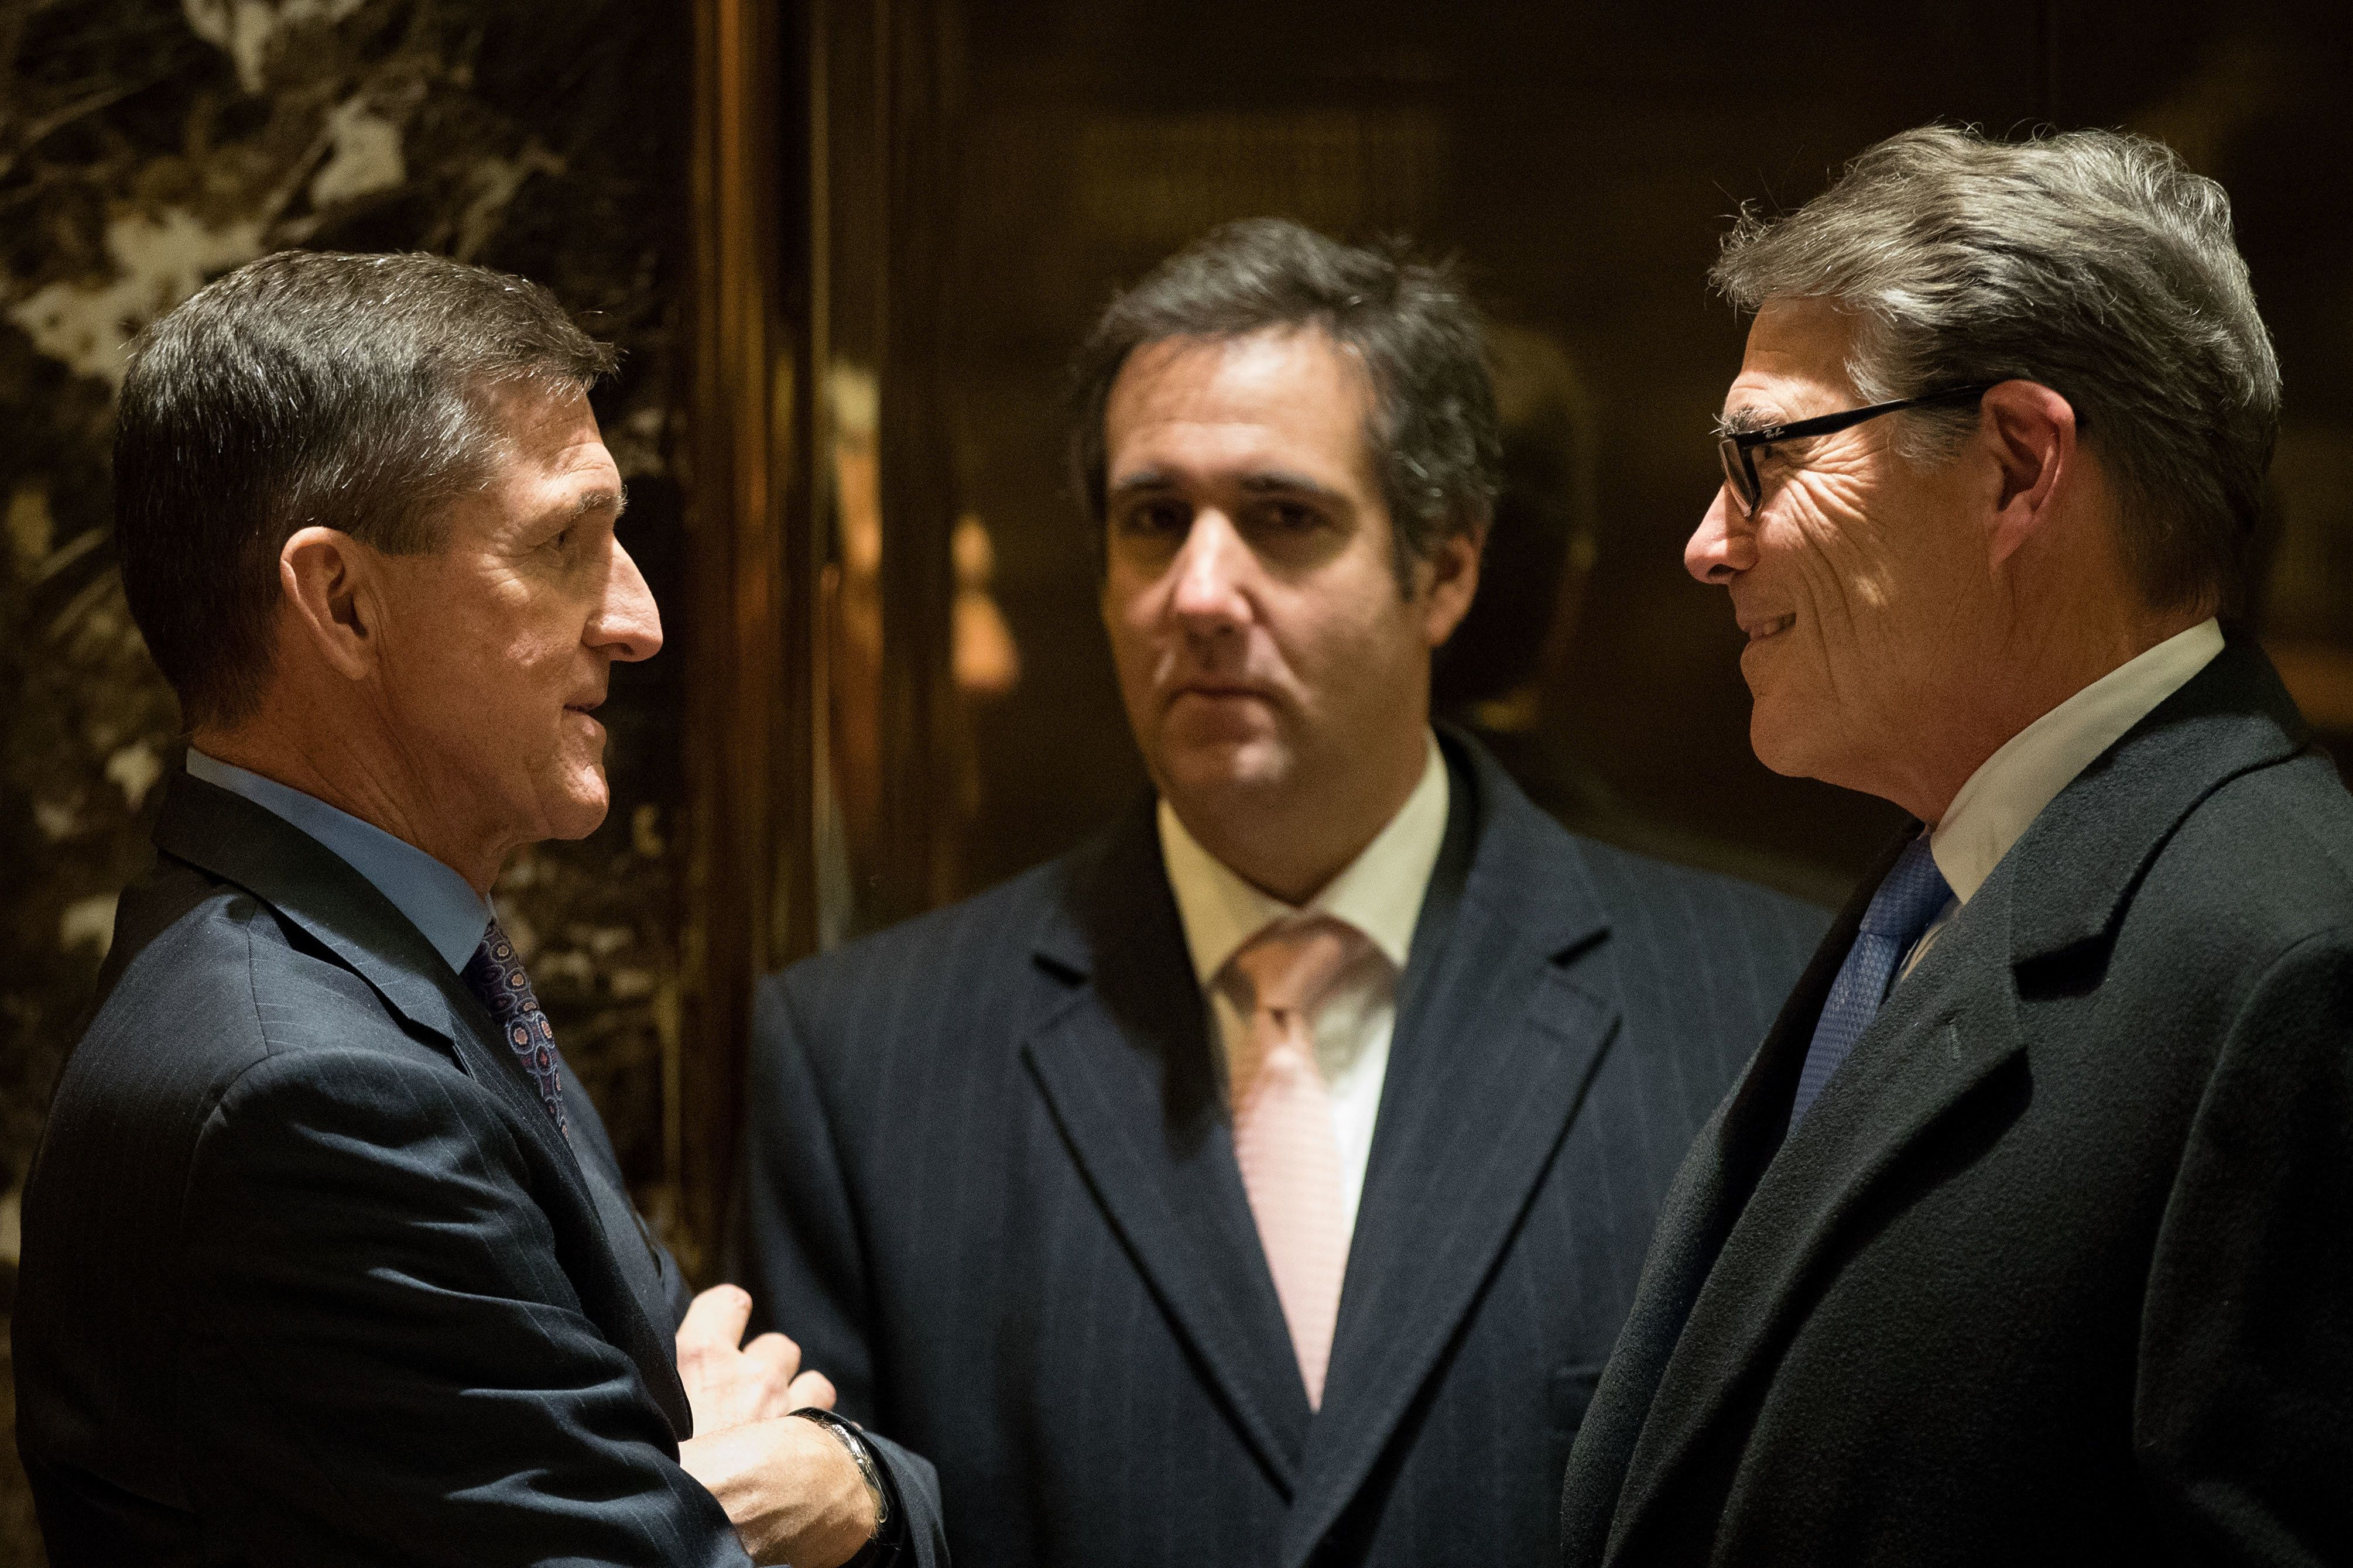 NEW YORK, NY - DECEMBER 12: (L to R) Retired Lt. Gen. Michael Flynn, President-elect Donald Trump's choice for National Security Advisor, Michael Cohen, executive vice president of the Trump Organization and special counsel to Donald Trump, and former Texas Governor Rick Perry talk with each other in the lobby at Trump Tower, December 12, 2016 in New York City. President-elect Donald Trump and his transition team are in the process of filling cabinet and other high level positions for the new administration. (Photo by Drew Angerer/Getty Images)